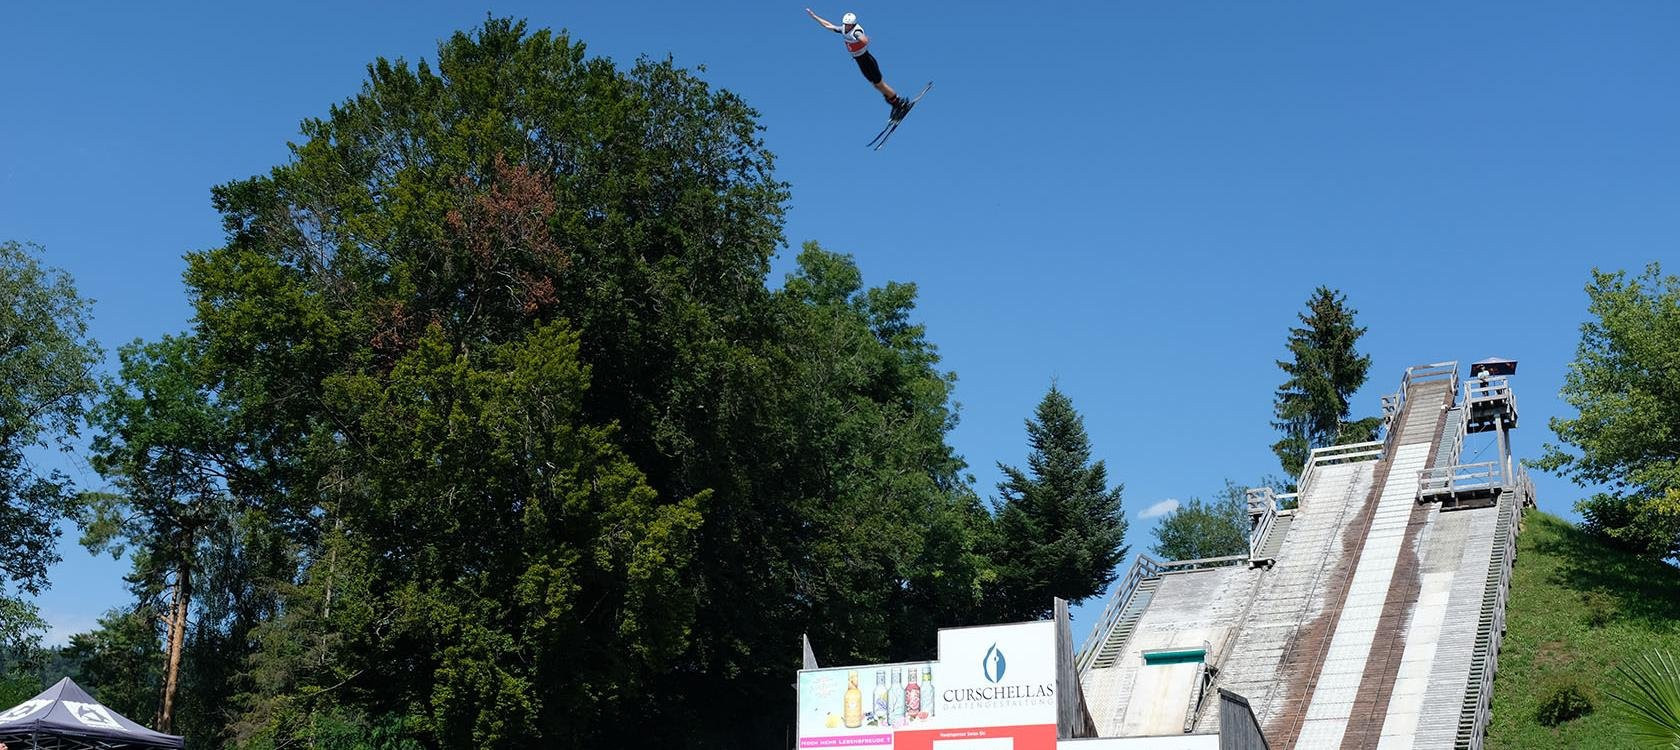 Roth debuts new trick in training as Switzerland hosts aerials camp